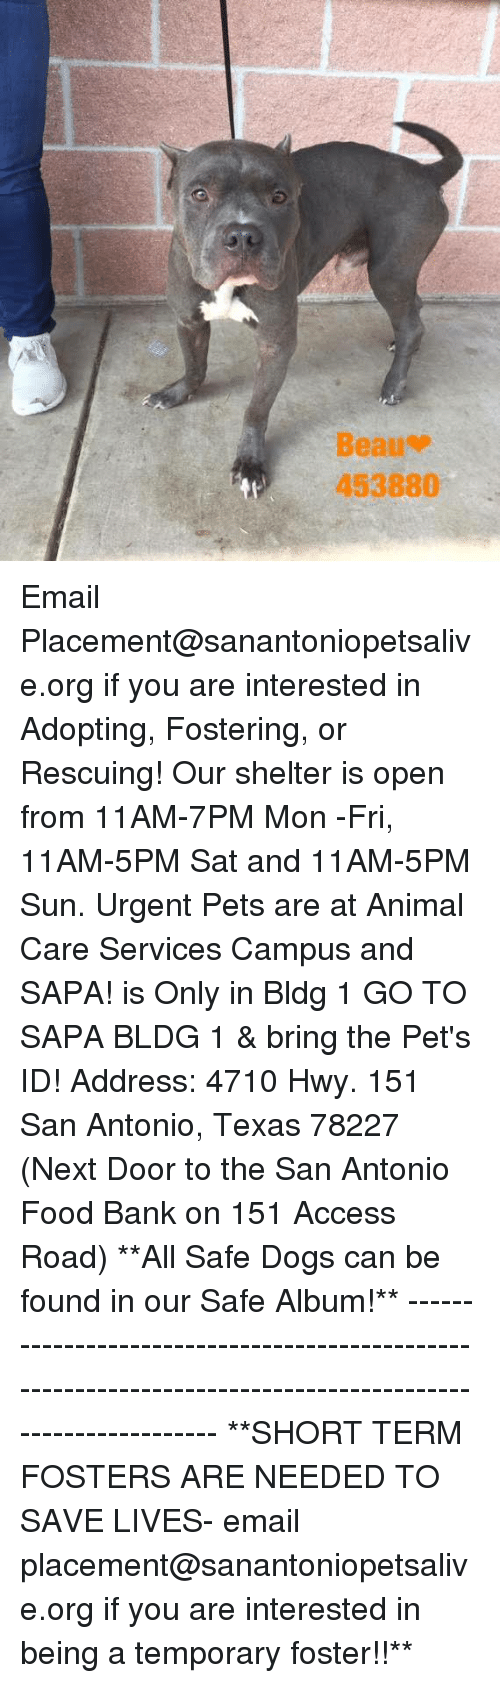 Dogs, Food, and Memes: Beau-  453880 Email Placement@sanantoniopetsalive.org if you are interested in Adopting, Fostering, or Rescuing!  Our shelter is open from 11AM-7PM Mon -Fri, 11AM-5PM Sat and 11AM-5PM Sun.  Urgent Pets are at Animal Care Services Campus and SAPA! is Only in Bldg 1 GO TO SAPA BLDG 1 & bring the Pet's ID! Address: 4710 Hwy. 151 San Antonio, Texas 78227 (Next Door to the San Antonio Food Bank on 151 Access Road)  **All Safe Dogs can be found in our Safe Album!** ---------------------------------------------------------------------------------------------------------- **SHORT TERM FOSTERS ARE NEEDED TO SAVE LIVES- email placement@sanantoniopetsalive.org if you are interested in being a temporary foster!!**